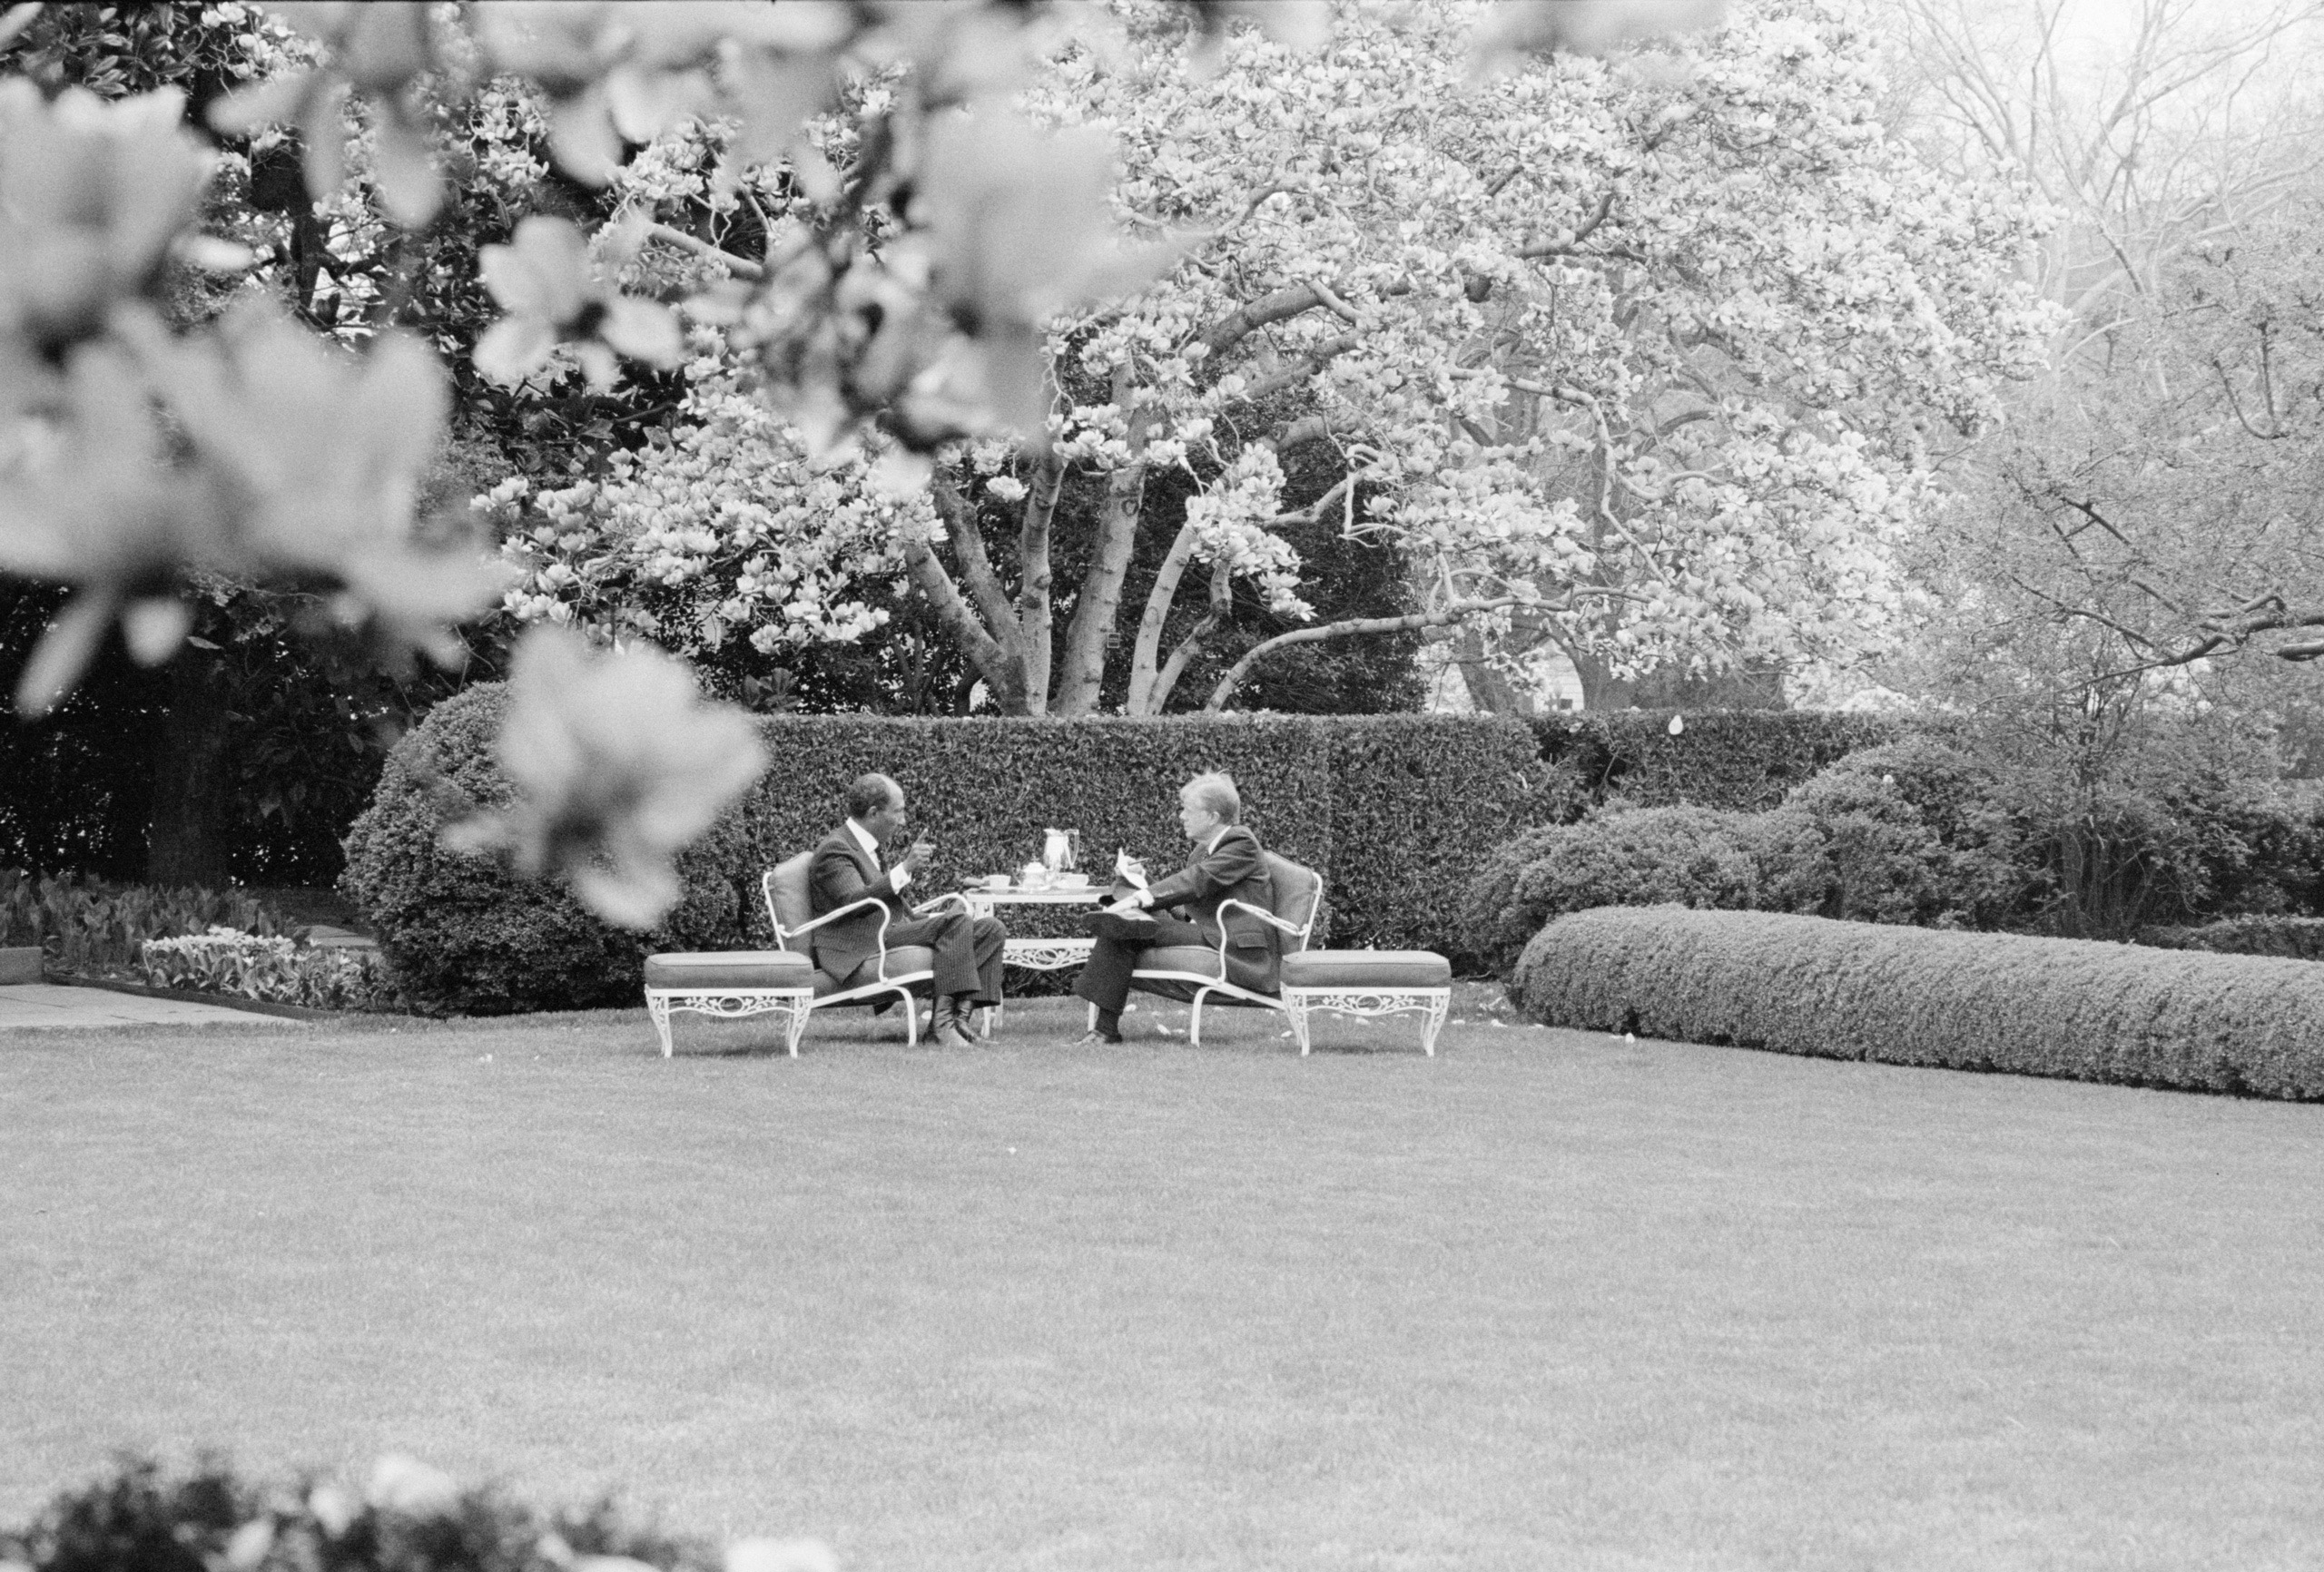 President Carter and Egyptian President Anwar Sadat have a private discussion in what might be an early example of  Rose Garden strategy ; or  What is said in the Rose Garden stays in the Rose Garden.